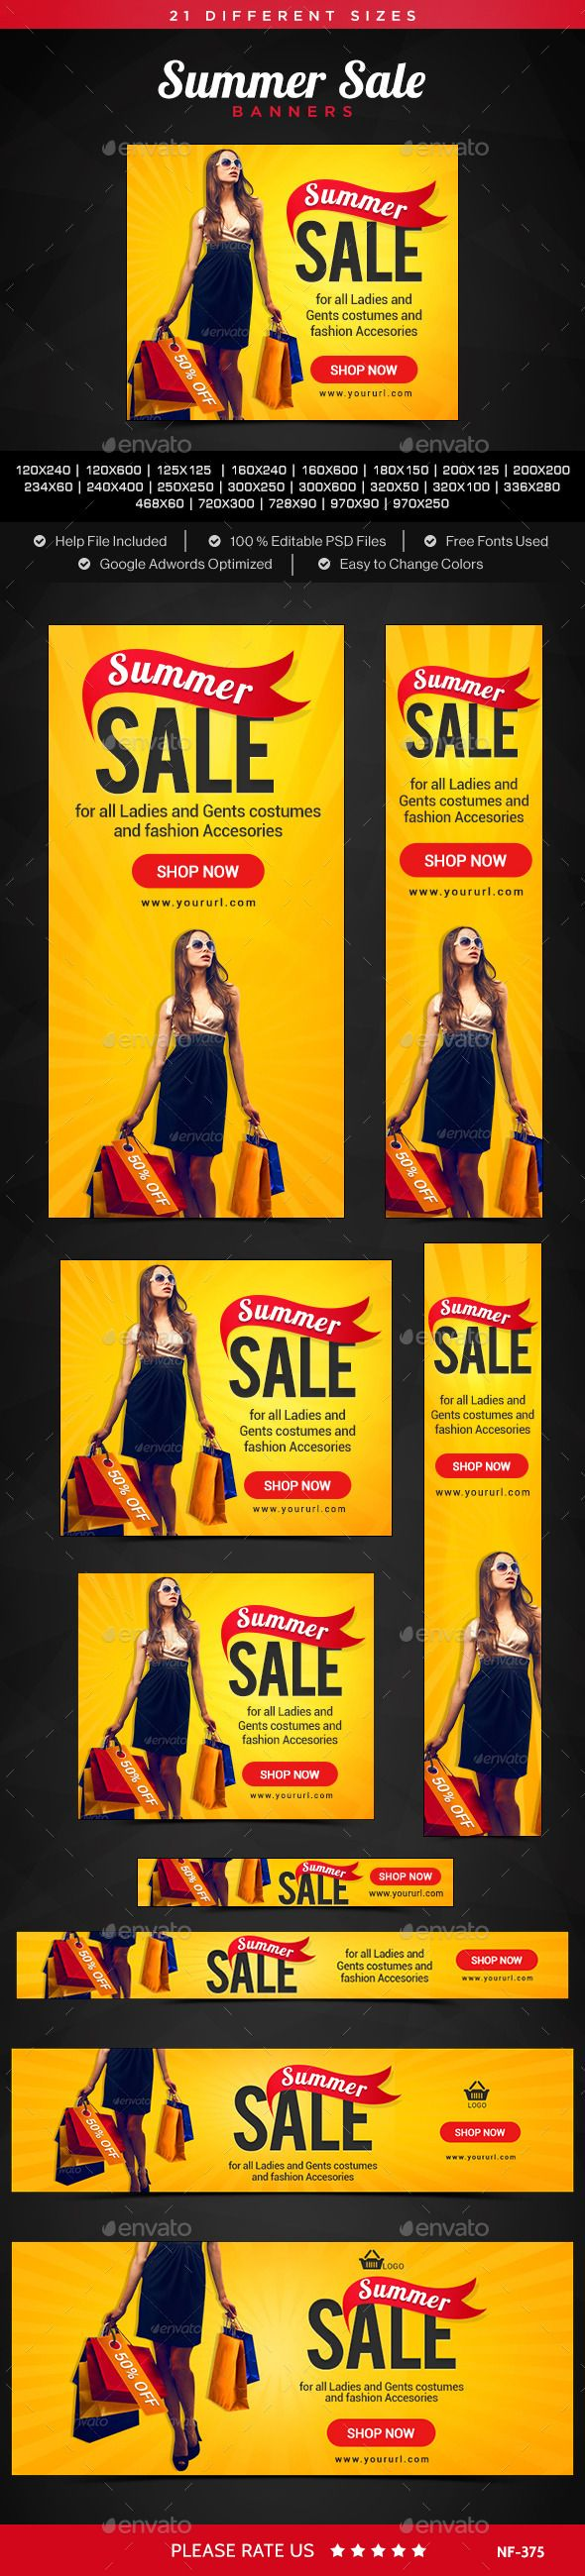 Summer Sale Banners Design Template #ads #banners Download: http://graphicriver.net/item/summer-sale-banners/11456080?ref=ksioks